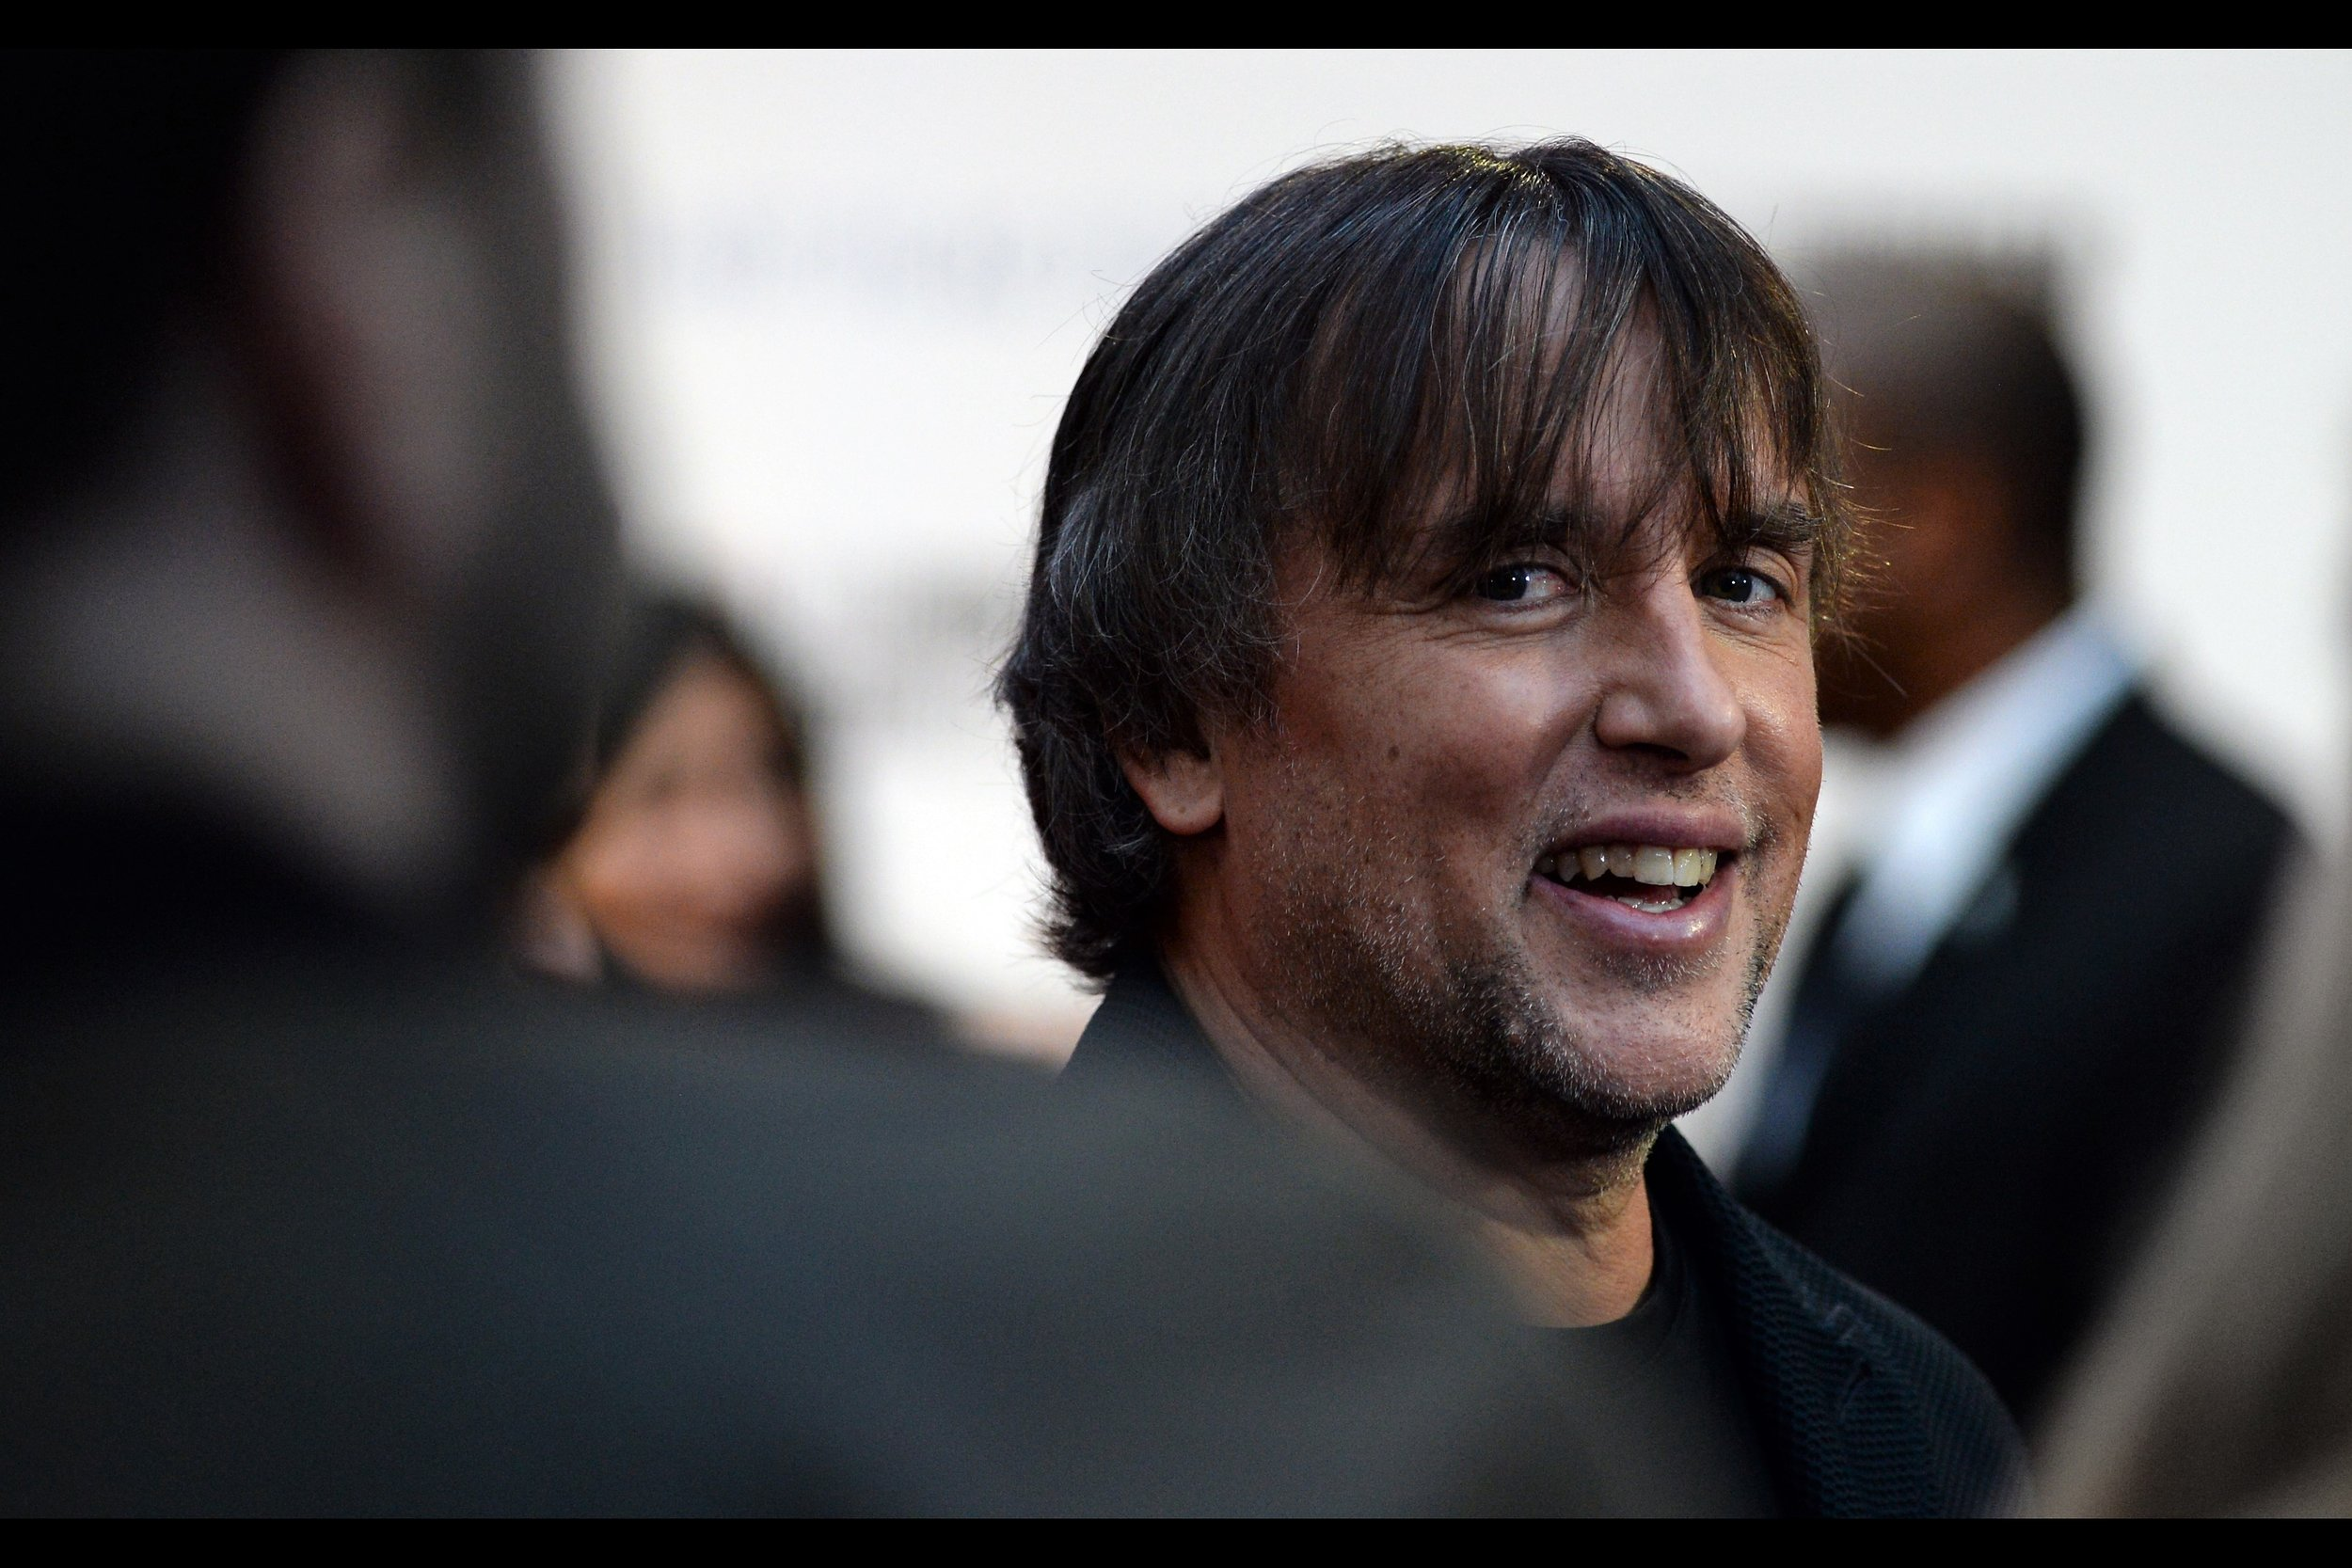 """Glad you're enjoying yourself, Bro""  - Richard Linklater has been nominated for FIVE Oscars (Primarily for 'Boyhood (2015)' but also 'Before Sunset (2004)' and 'Before Midnight (2013)'. I'd photographed about 60 percent of his face at   the premiere of 'Me & Orson Welles"" back in 2009"